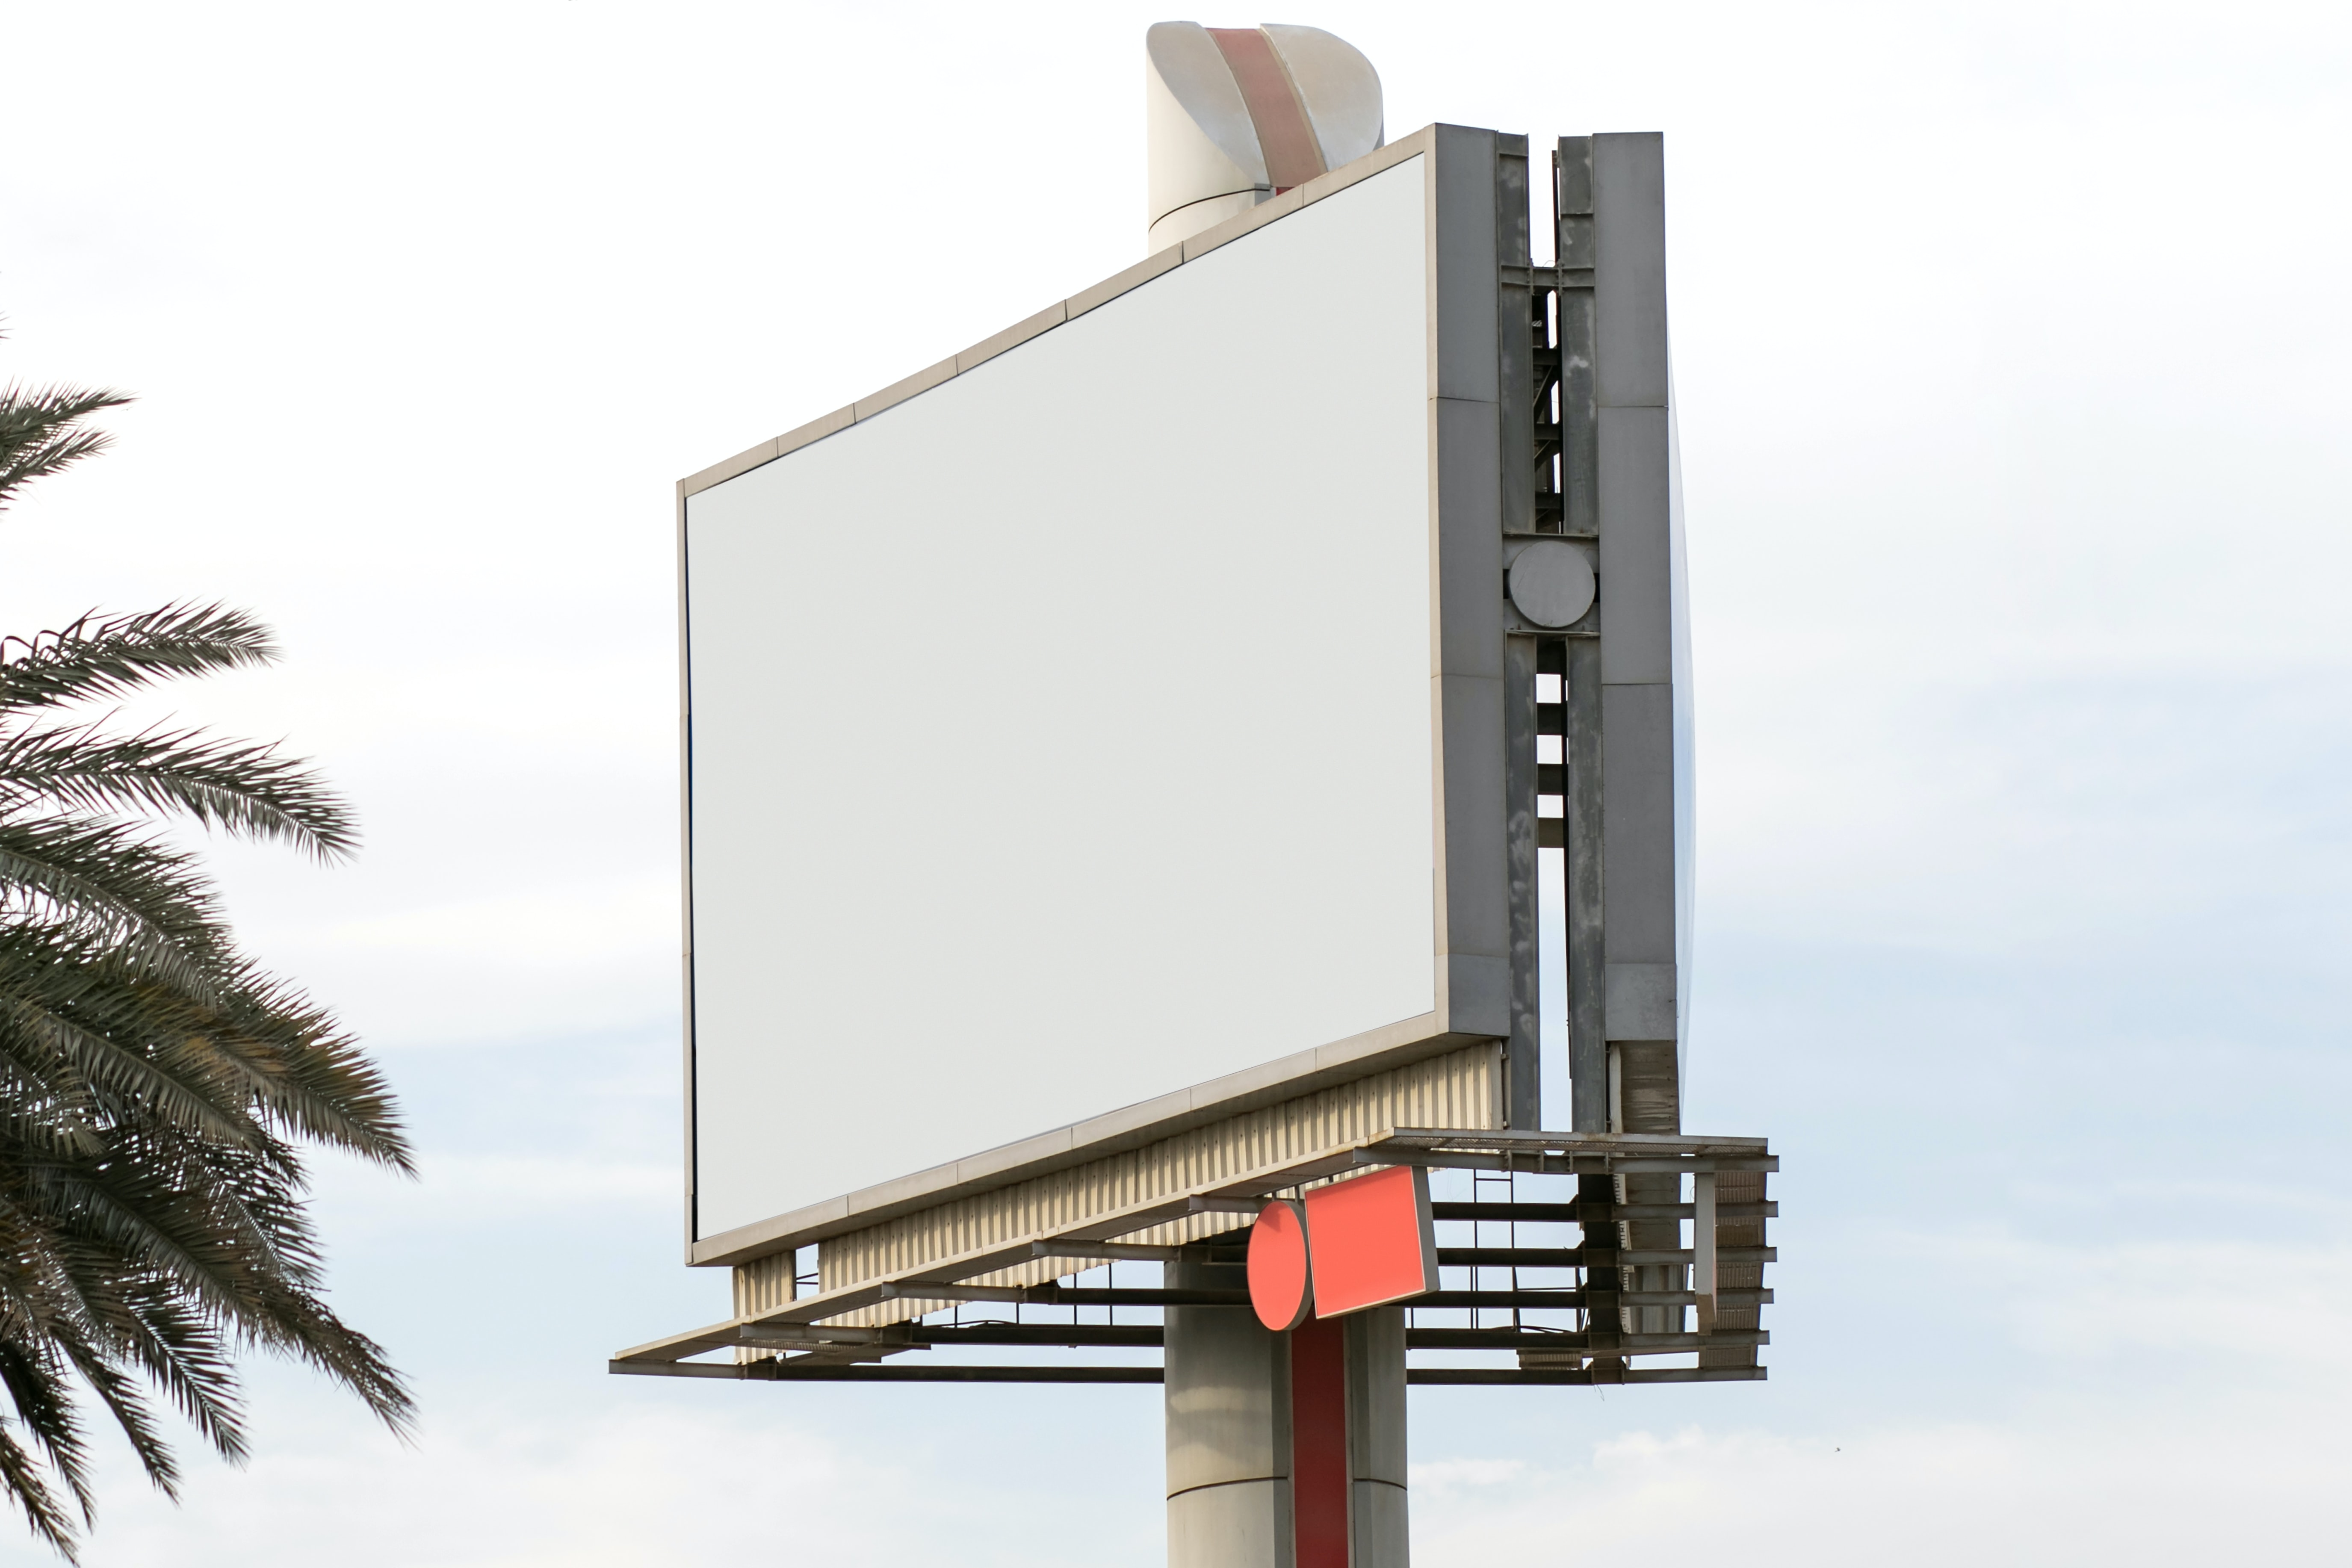 rectangular blank billboard